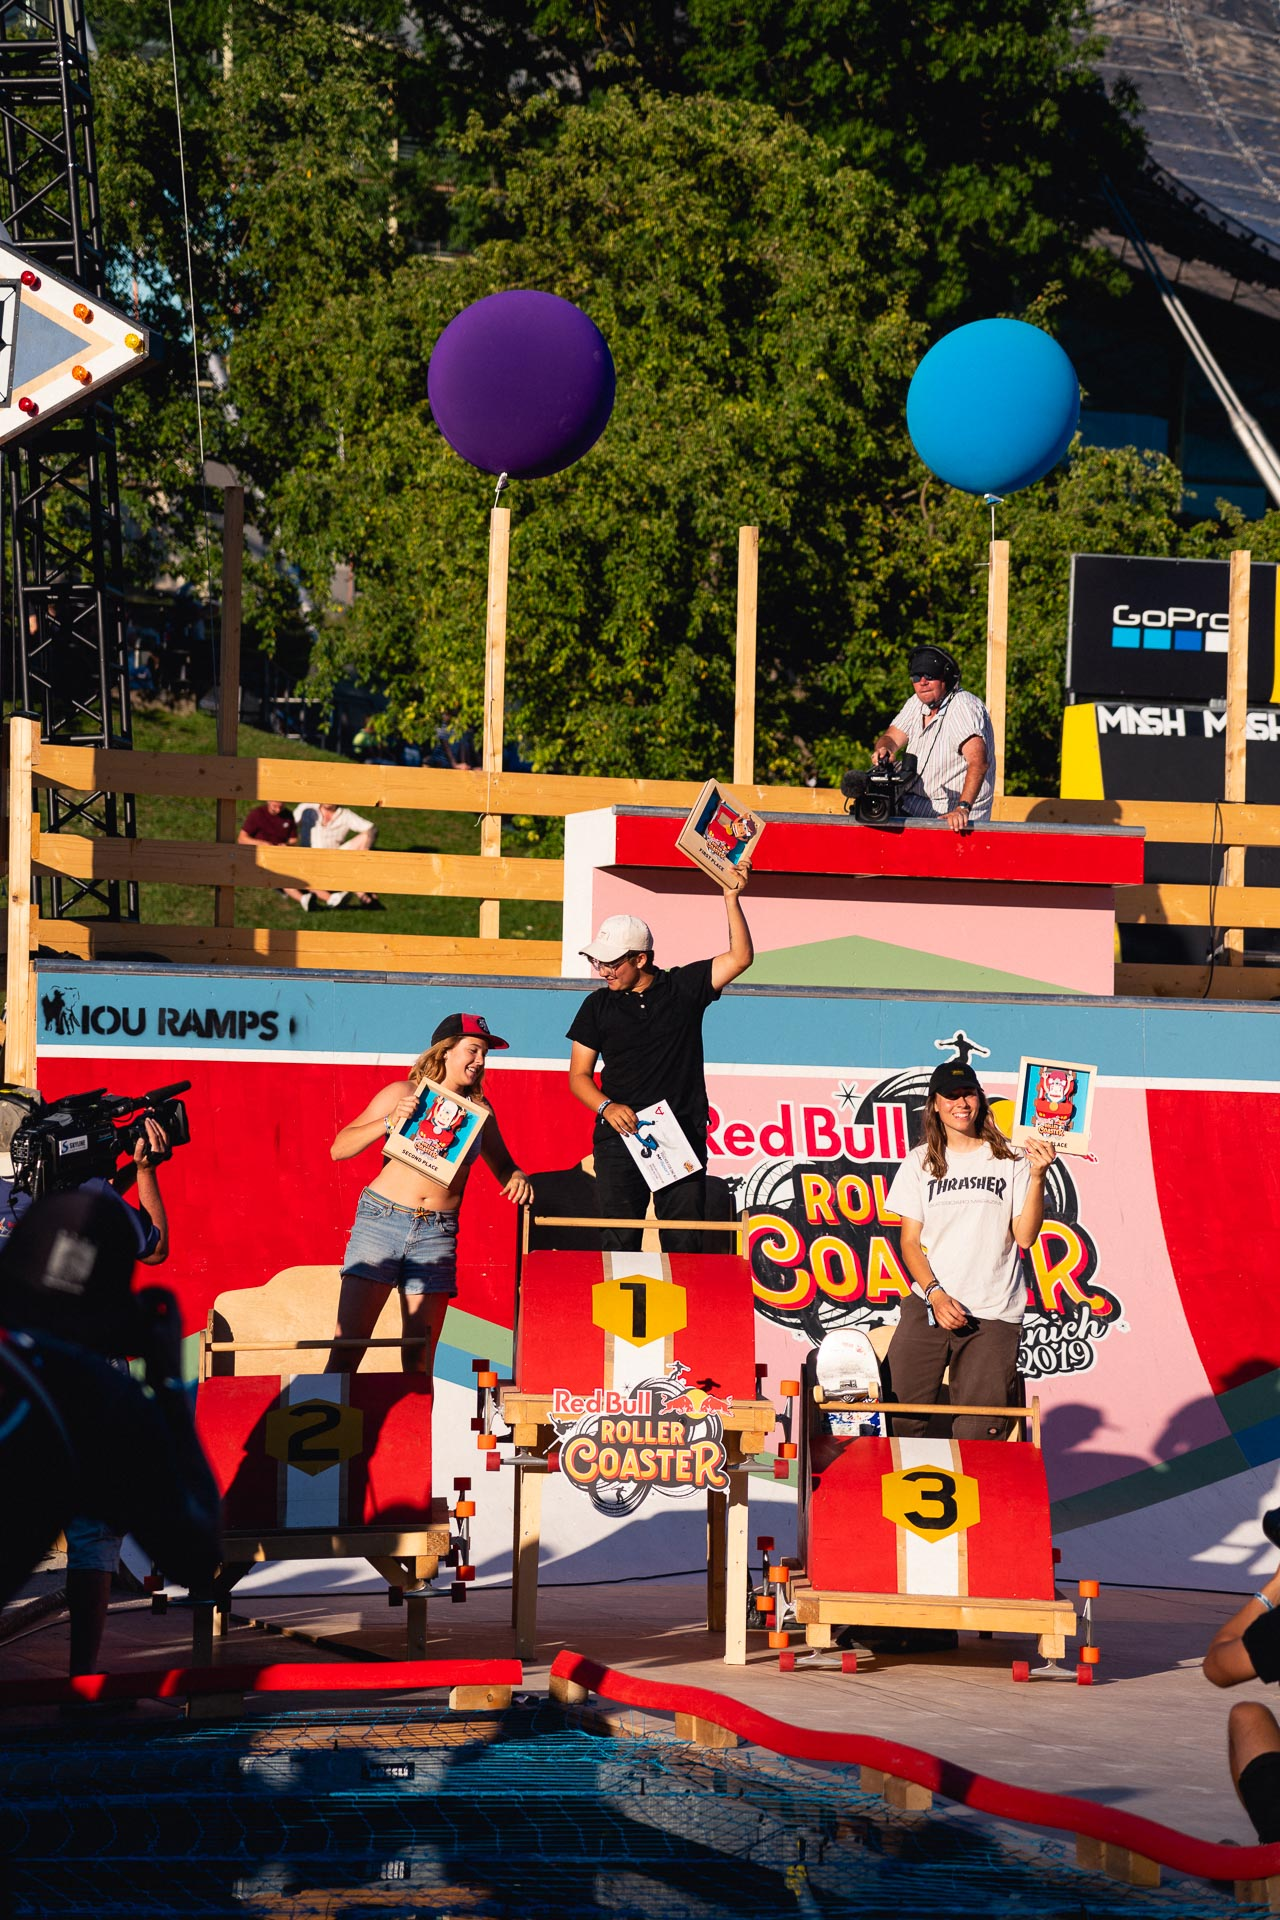 Red Bull Roller Coaster famale Podium